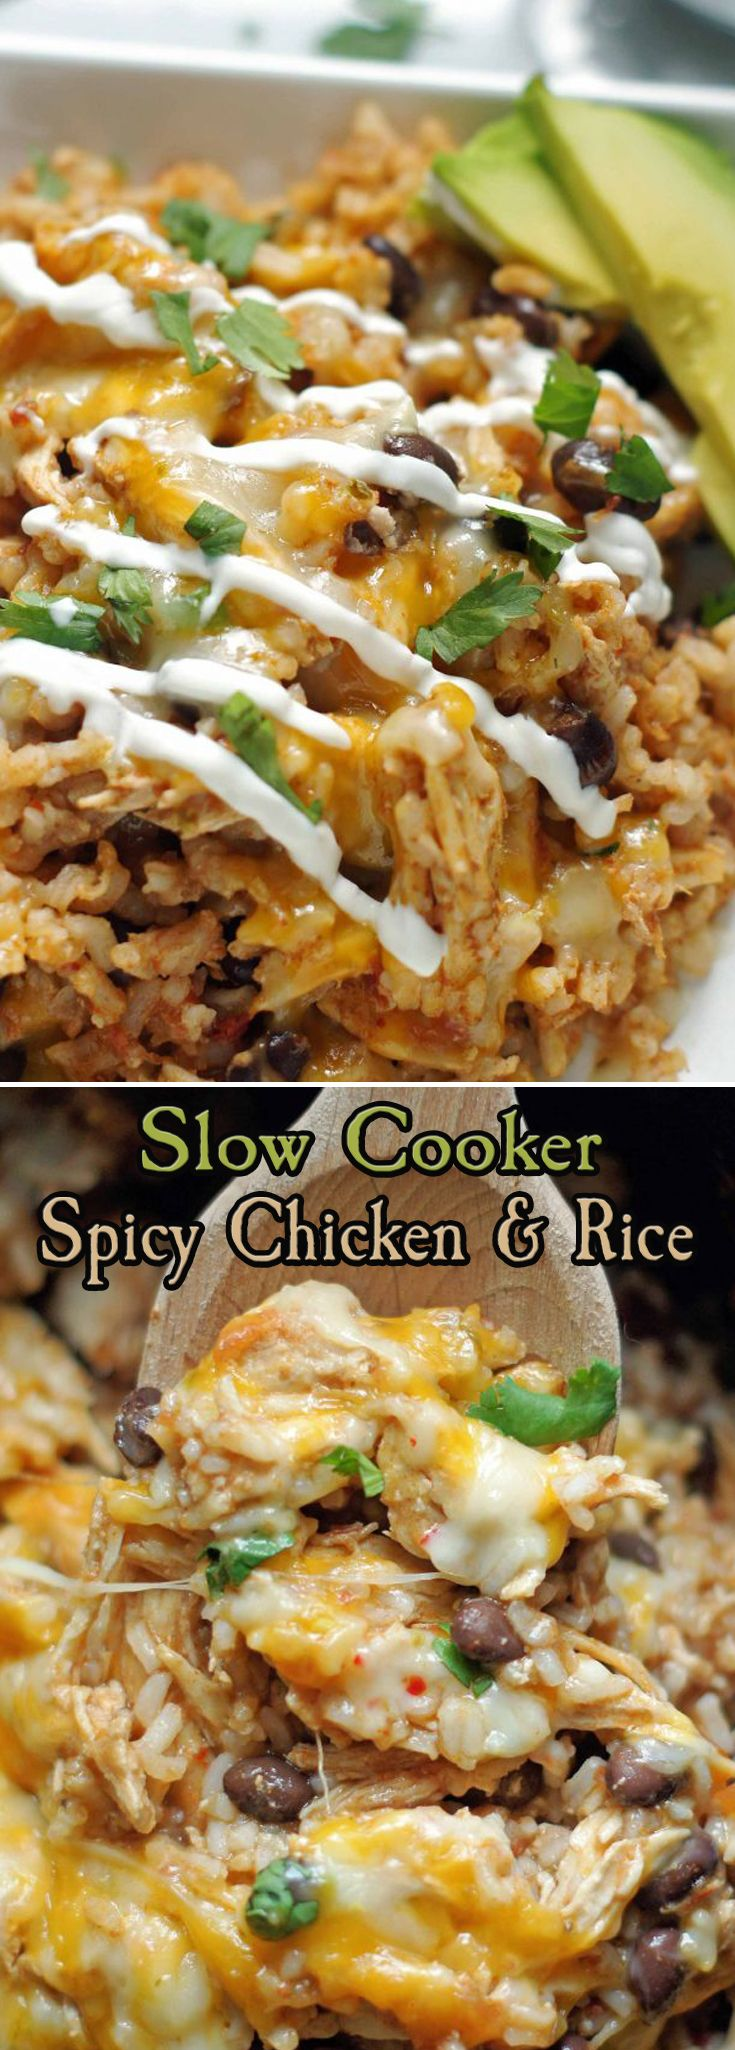 Slow Cooker Spicy Chicken Mexican crock pot black beans